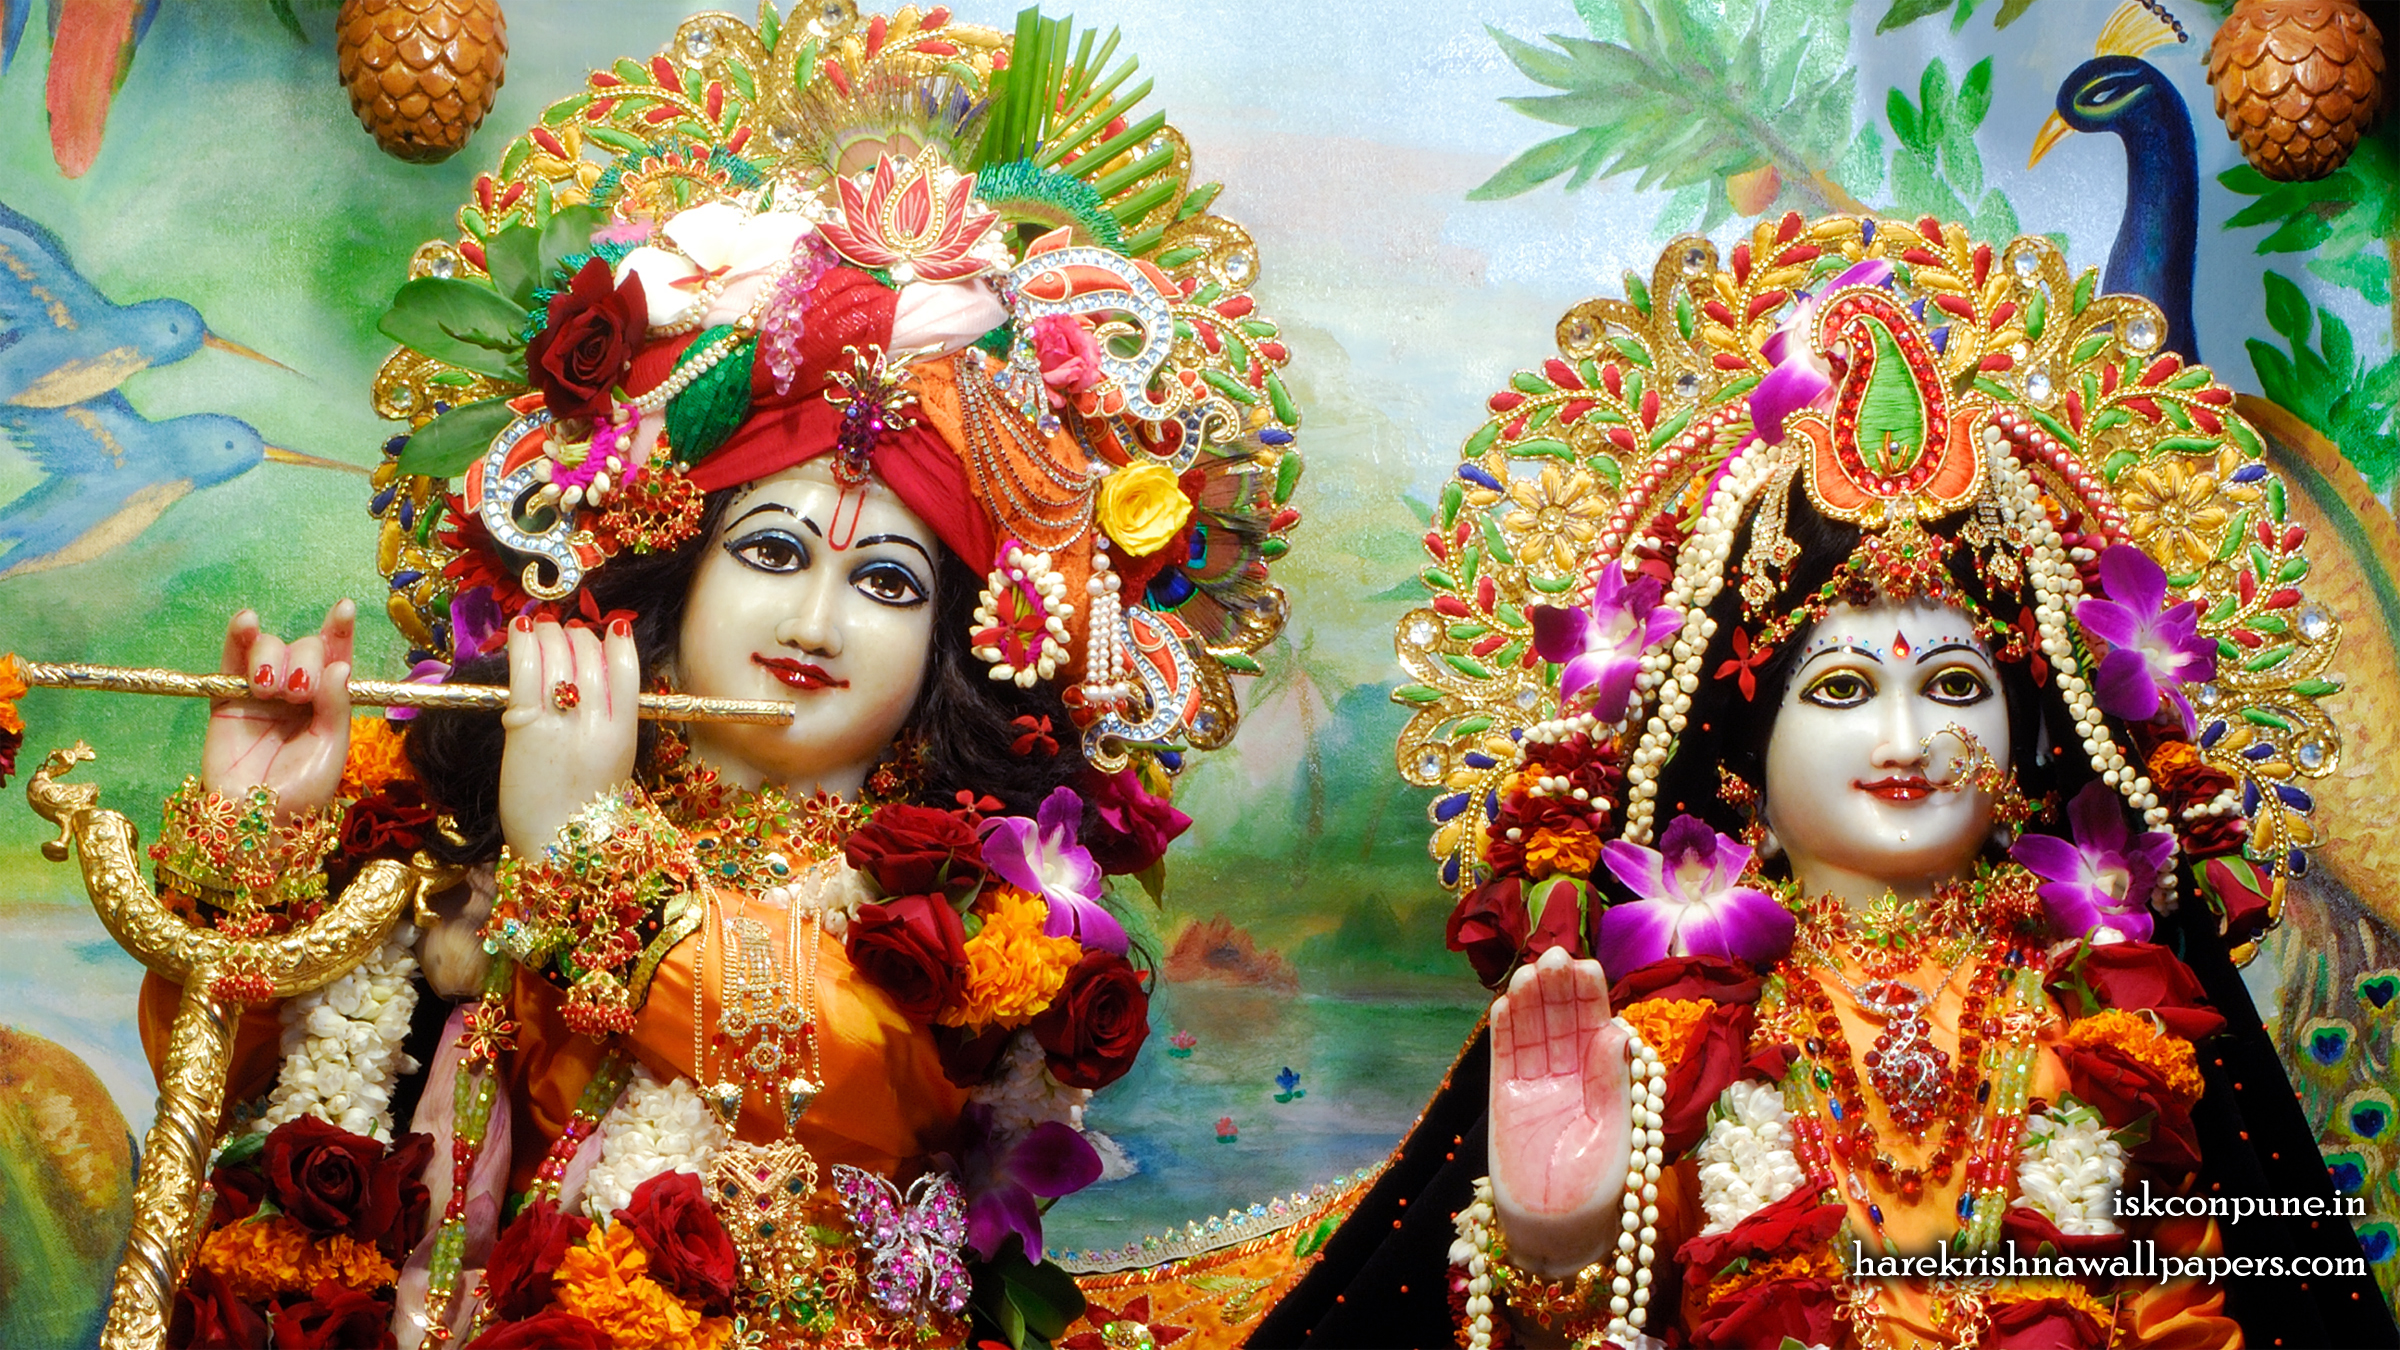 Sri Sri Radha Kunjabihari Close up Wallpaper (001) Size 2400x1350 Download